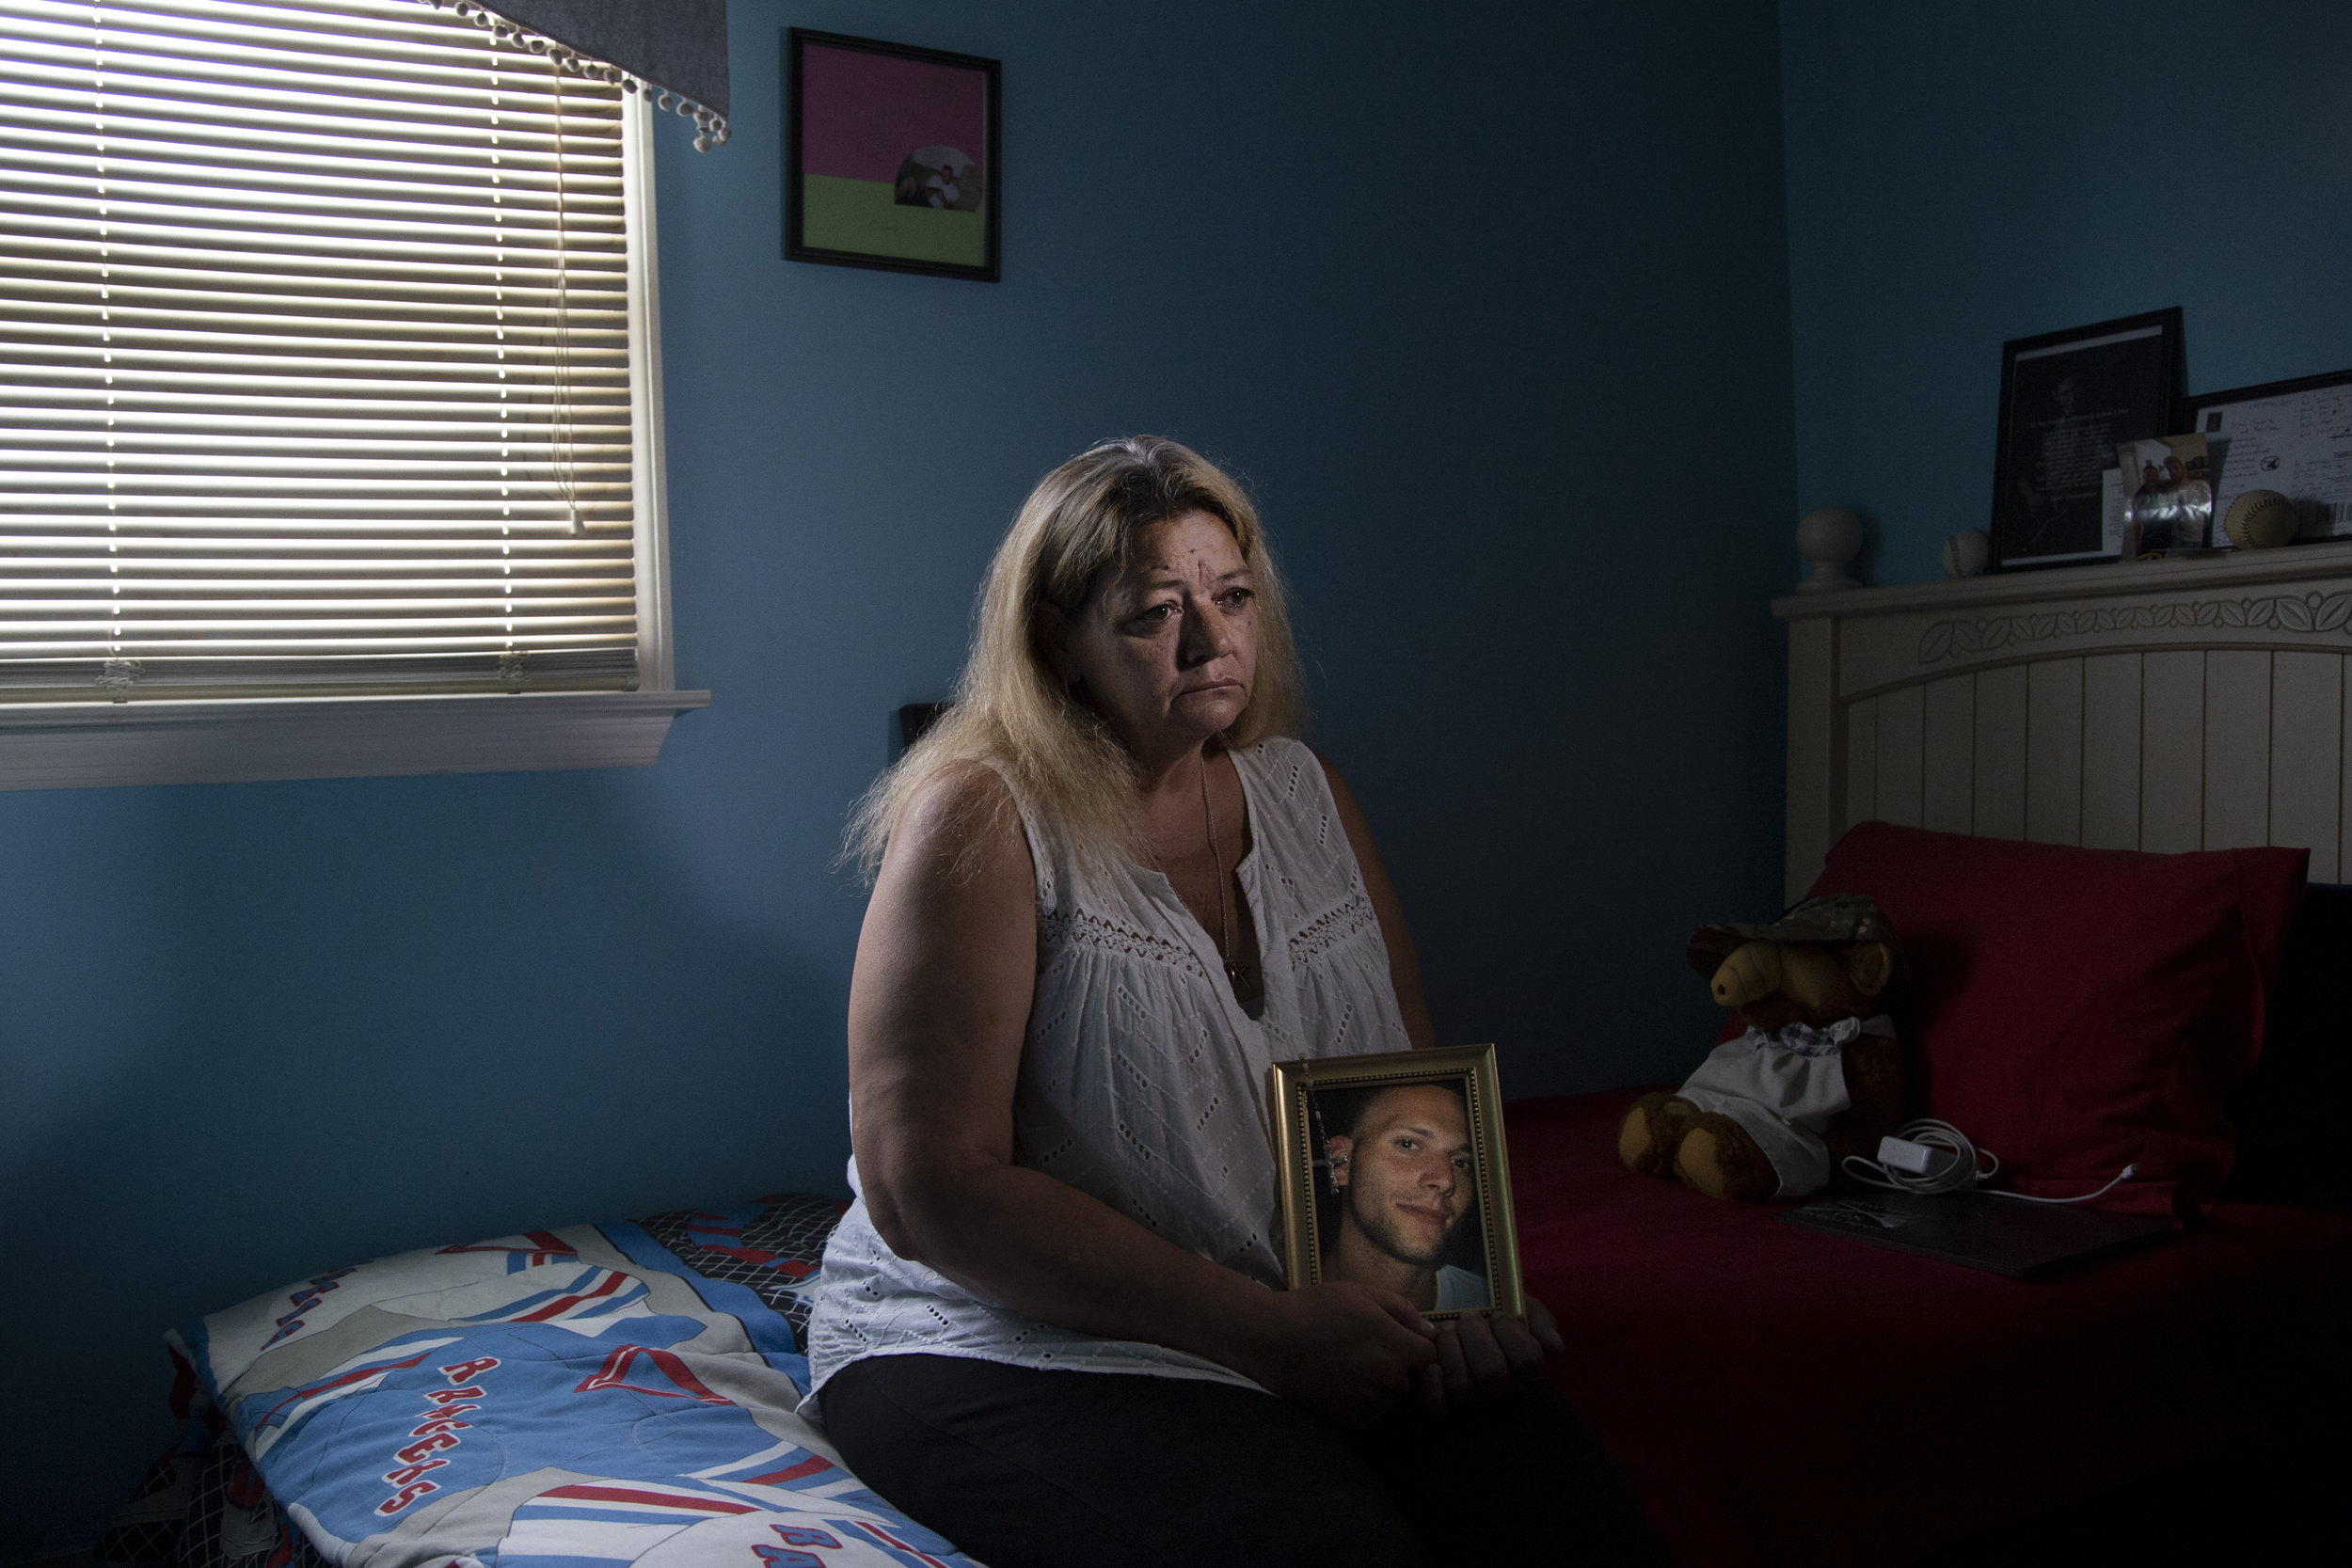 Sandra King sits in a guest bedroom that John would frequently stay in her home and holds a photo of her son, John King, who took his own life on October 7, 2017.